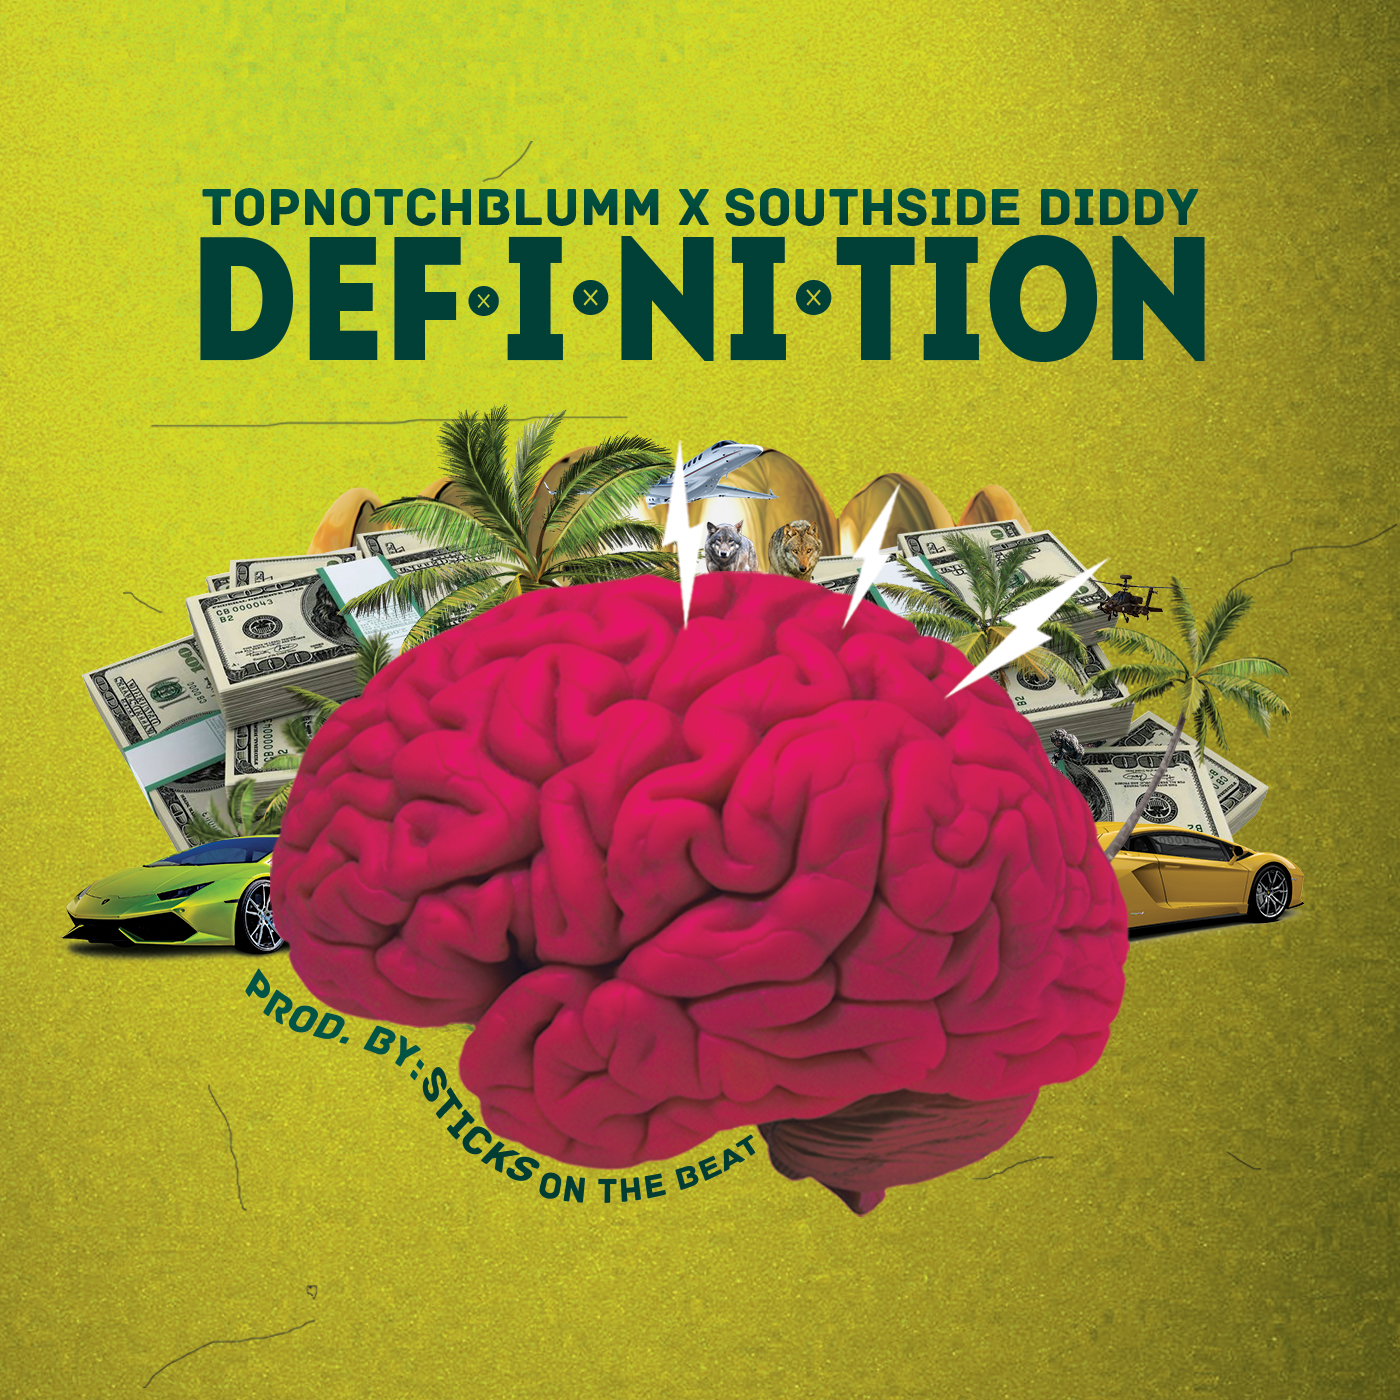 Definition (Feat. Southside Diddy)